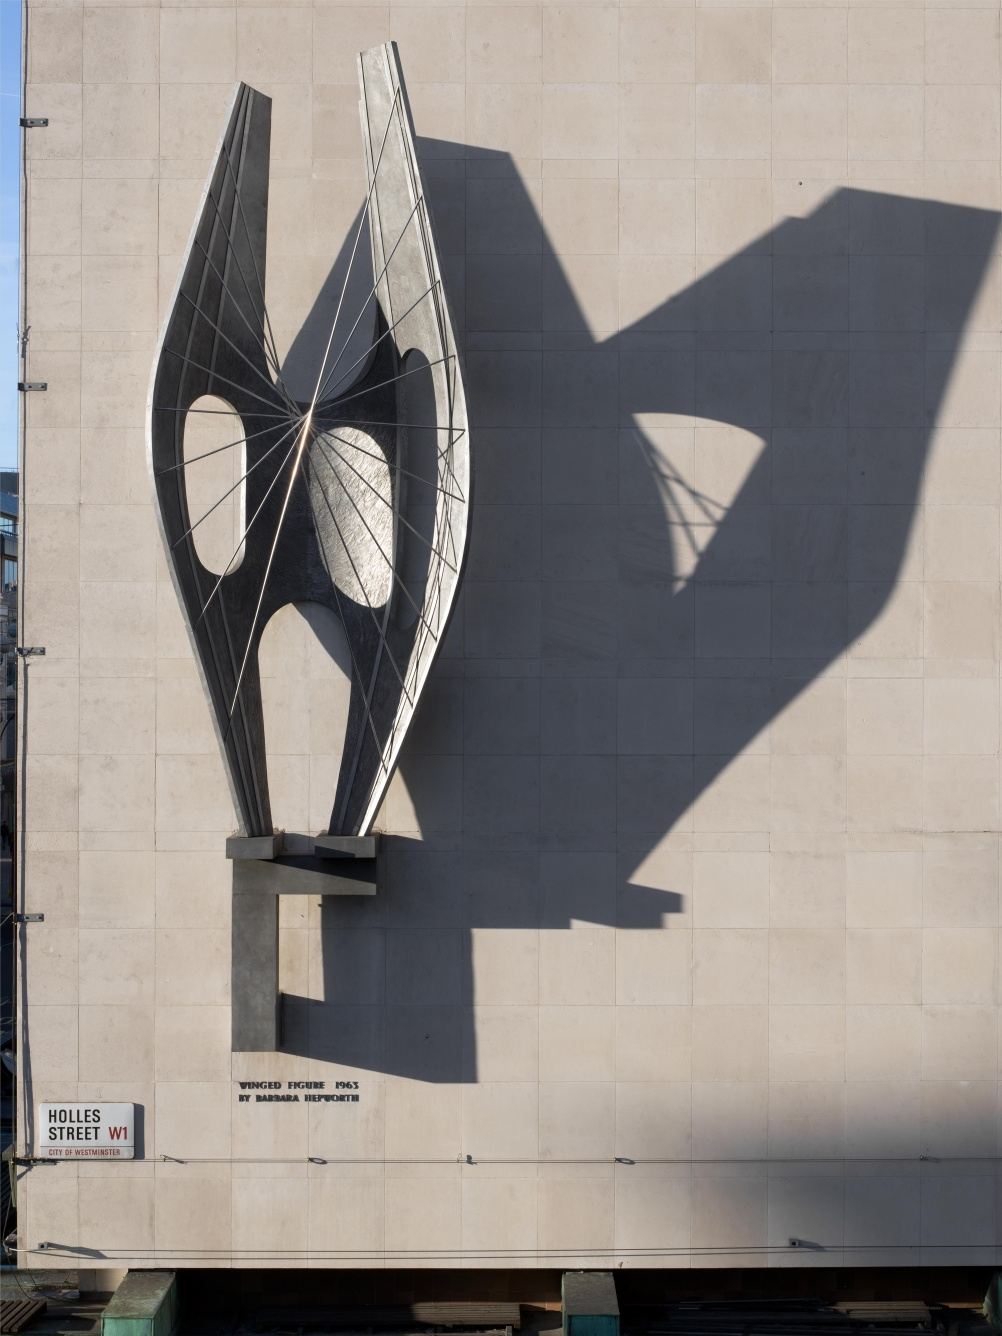 "Winged Figure by Barbara Hepworth, Oxford Street, London, 1963. Listed Grade II* One of Hepworth's most important works this is an Oxford Street landmark. Unusually, it is in the same position and context for which it was originally intended as a commission for the John Lewis store. Through it Hepworth said she wanted to evoke a sensation of freedom: ""if the figure in Oxford Street gives people a sense of being air-bourne in rain and sunlight and nightlight, I will be very happy"". © Historic England"